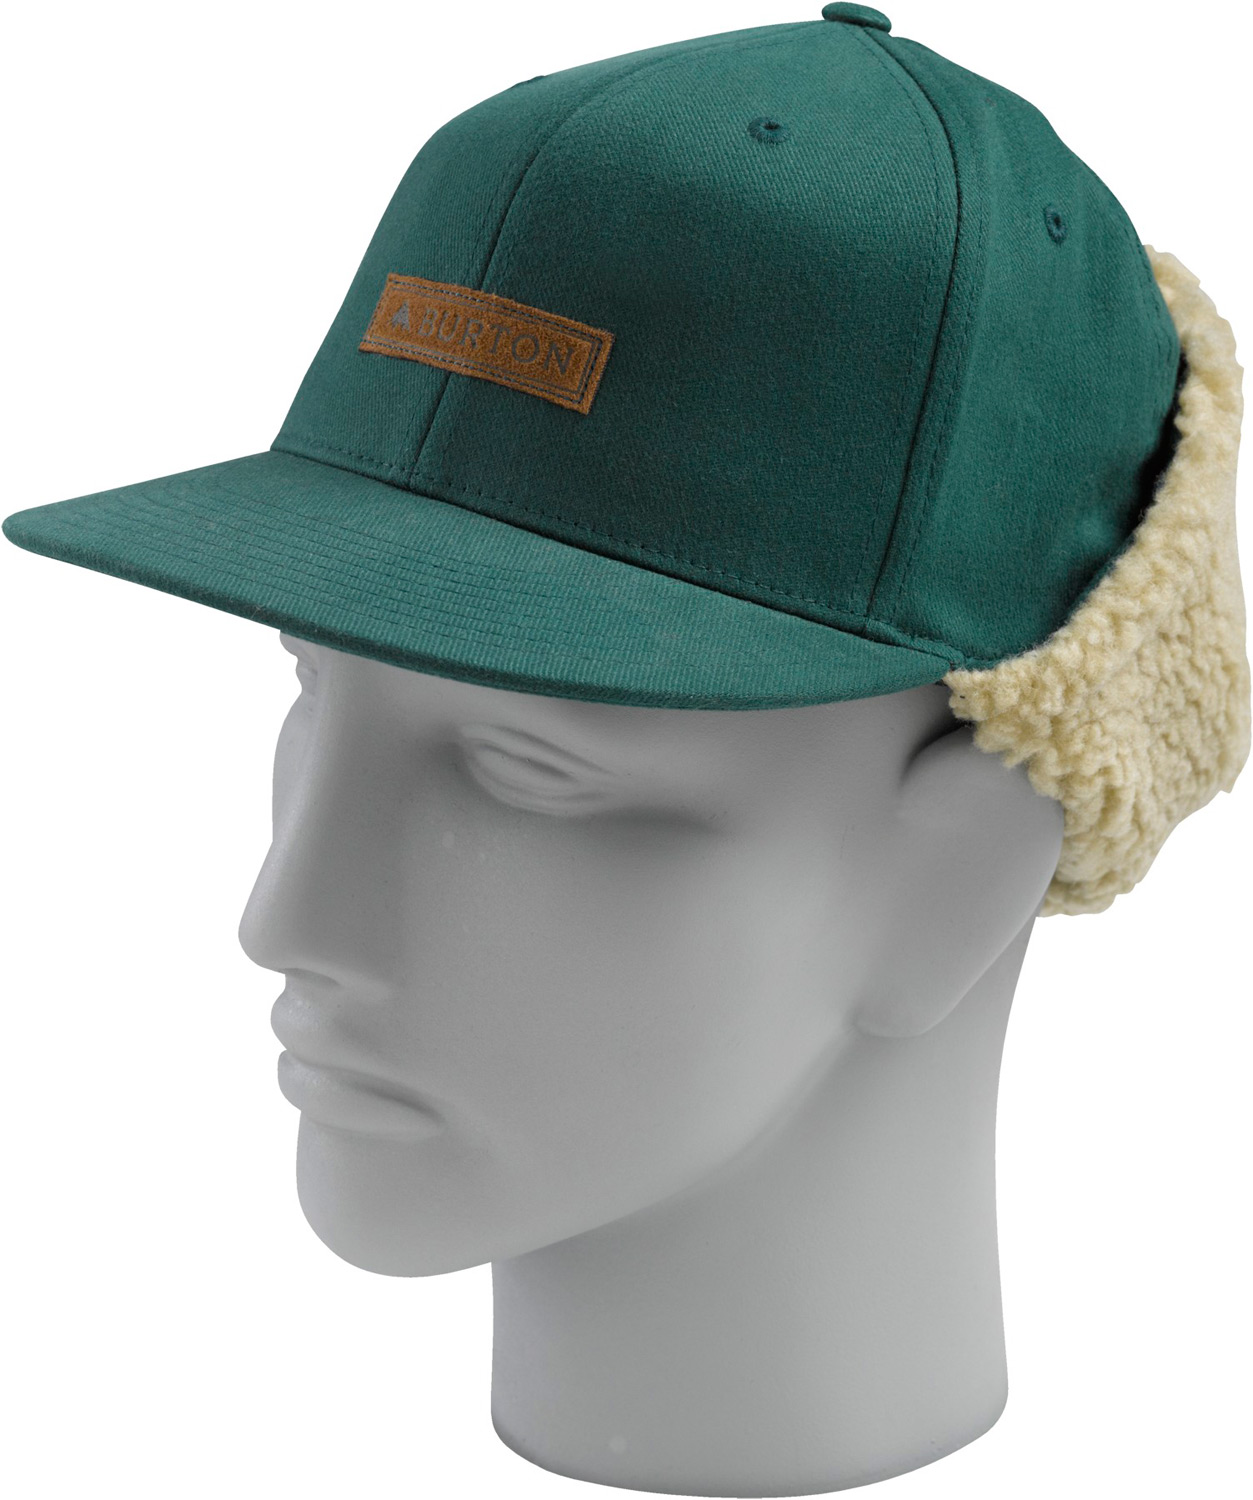 Snowboard Key Features of the Burton I Beam Cap: 60% Cotton 38% Polyester 2% Spandex Fitted with Dog Ears and Sherpa Fleece Faux Leather Patch Flat Visor - $15.95